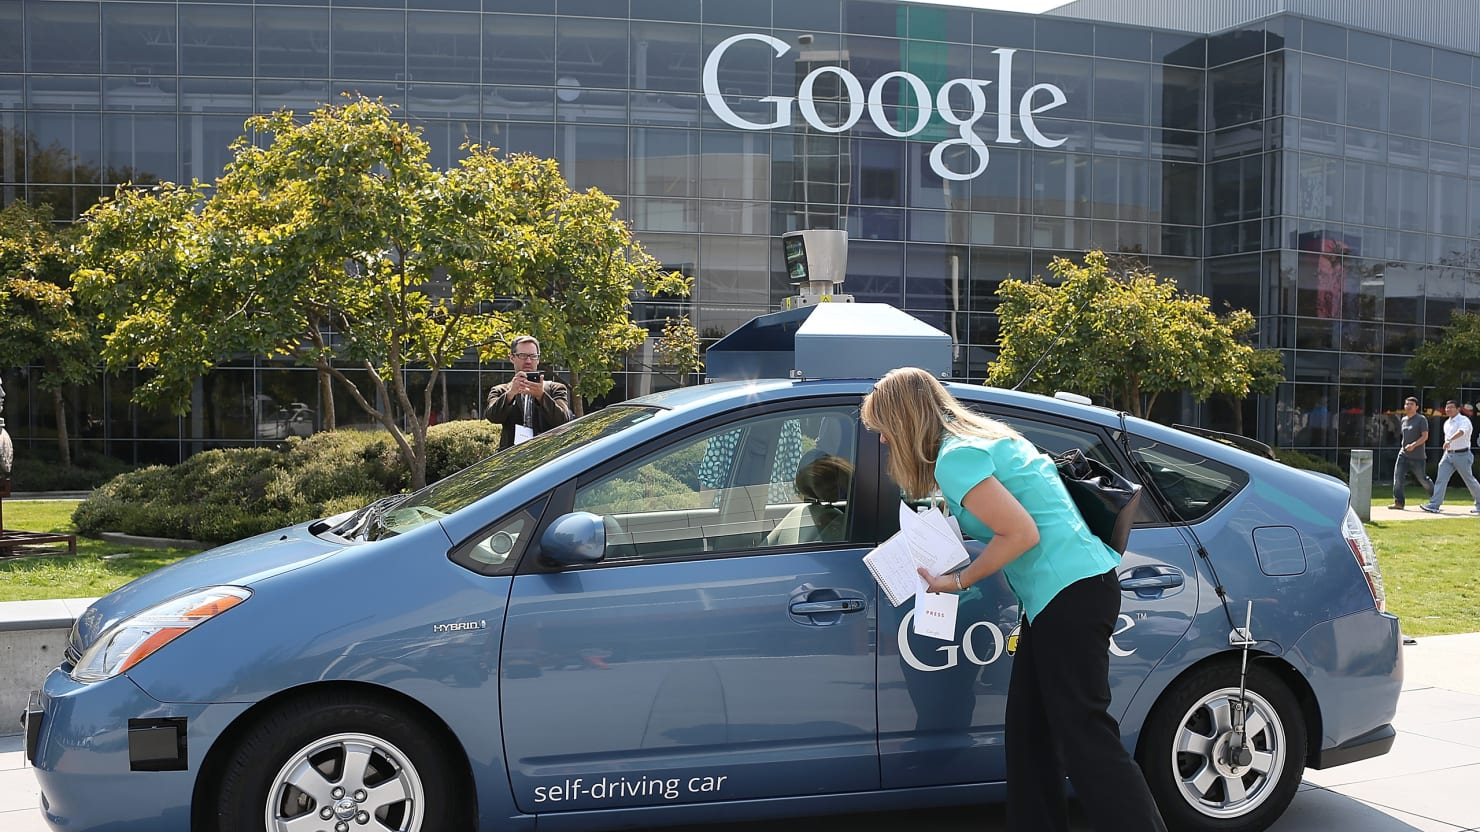 Google Audi Toyota And The Brave New World Of Driverless Cars - Google audi car